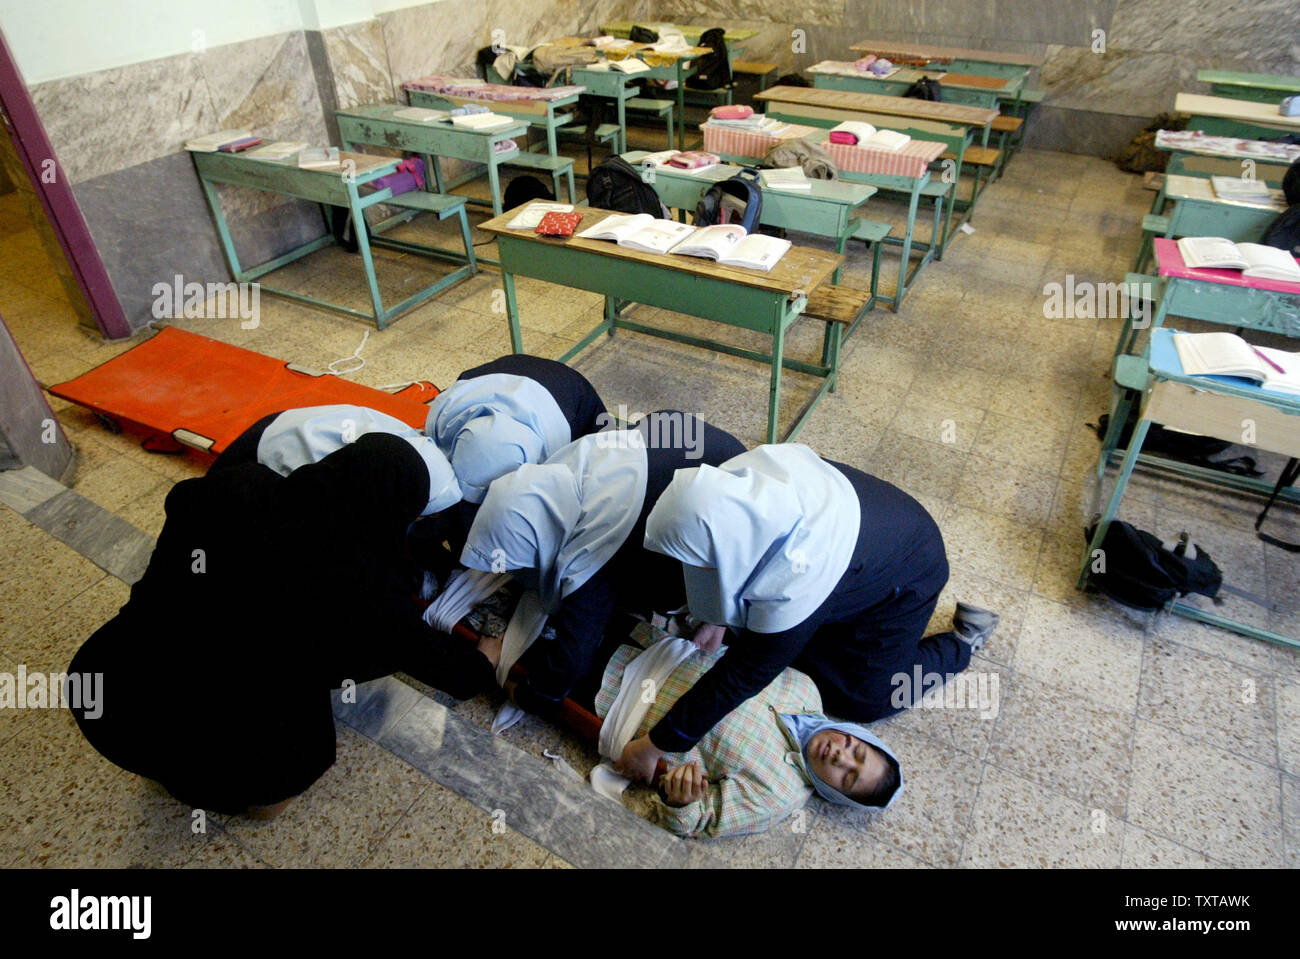 Iranian students treat a wounded student during an earthquake drill in one of the schools in Tehran, Iran on November 29, 2005. This is the 7th drill in a series to help prepare students in this seismically active country. (UPI Photo/Mohammad Kheirkhah) - Stock Image